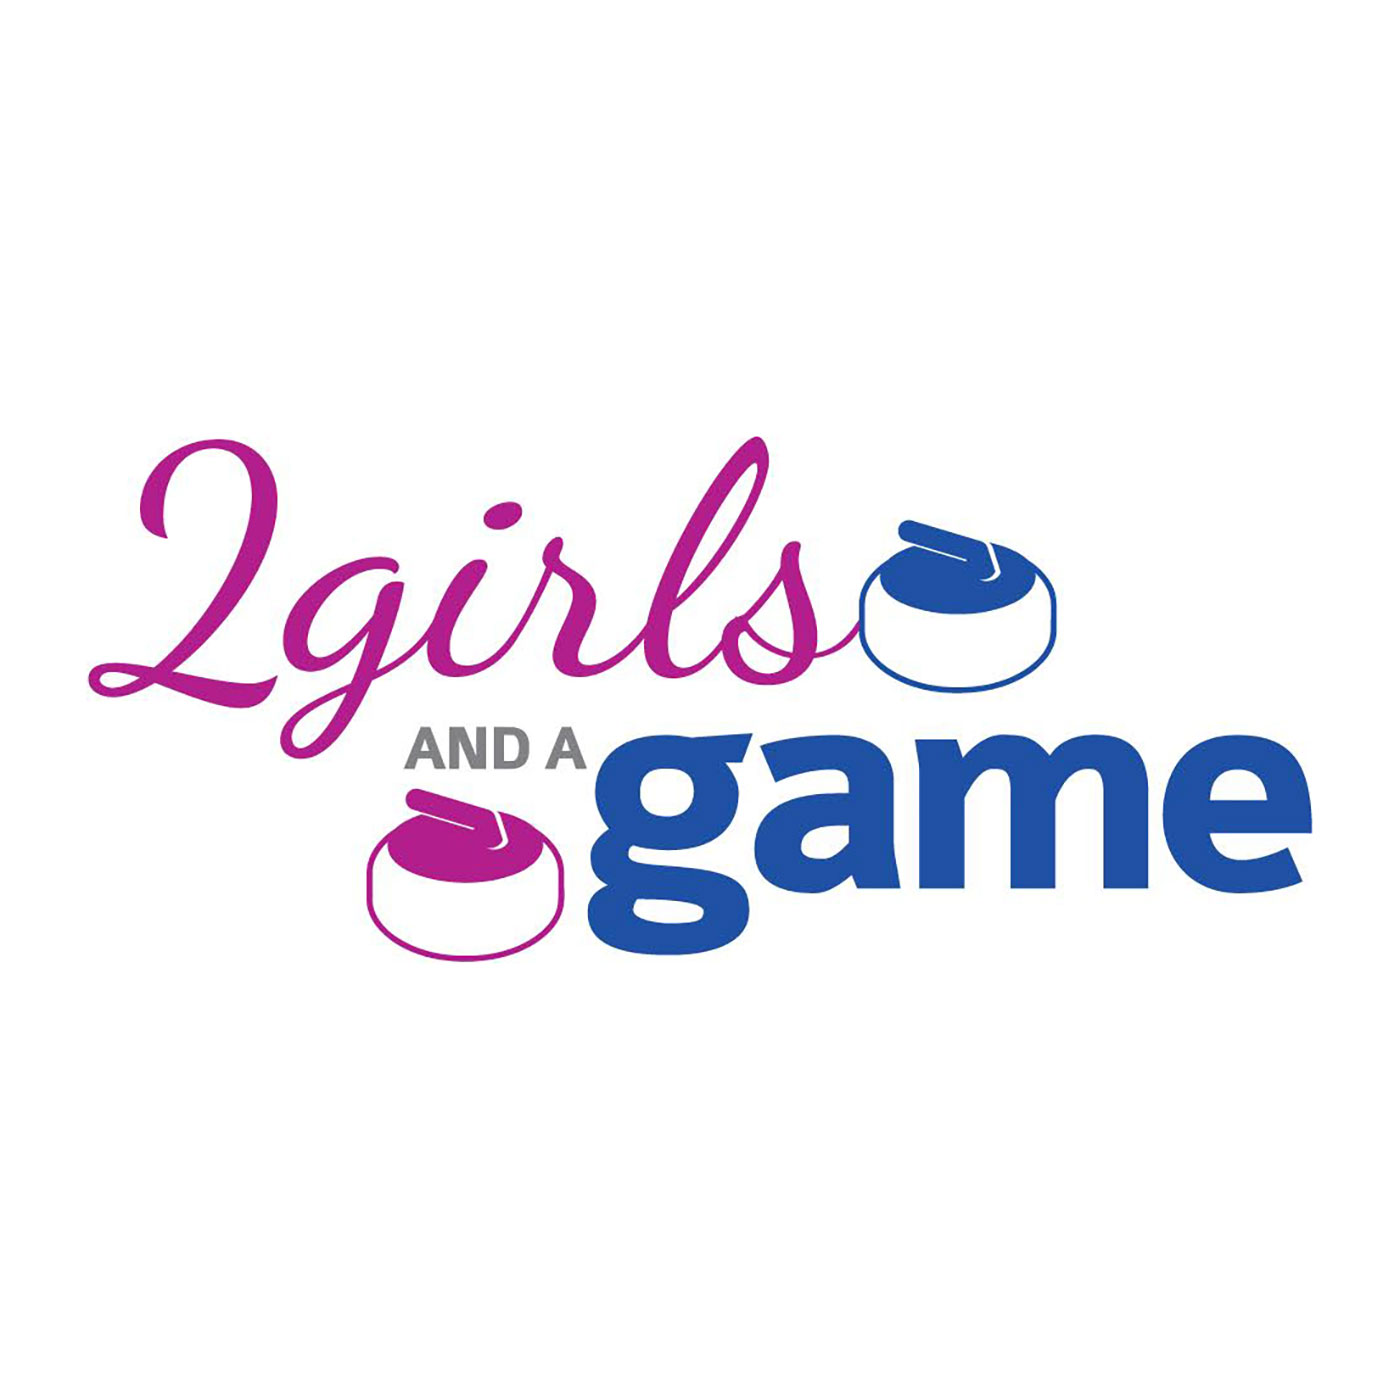 2 Girls and a Game - Curling Podcast show art